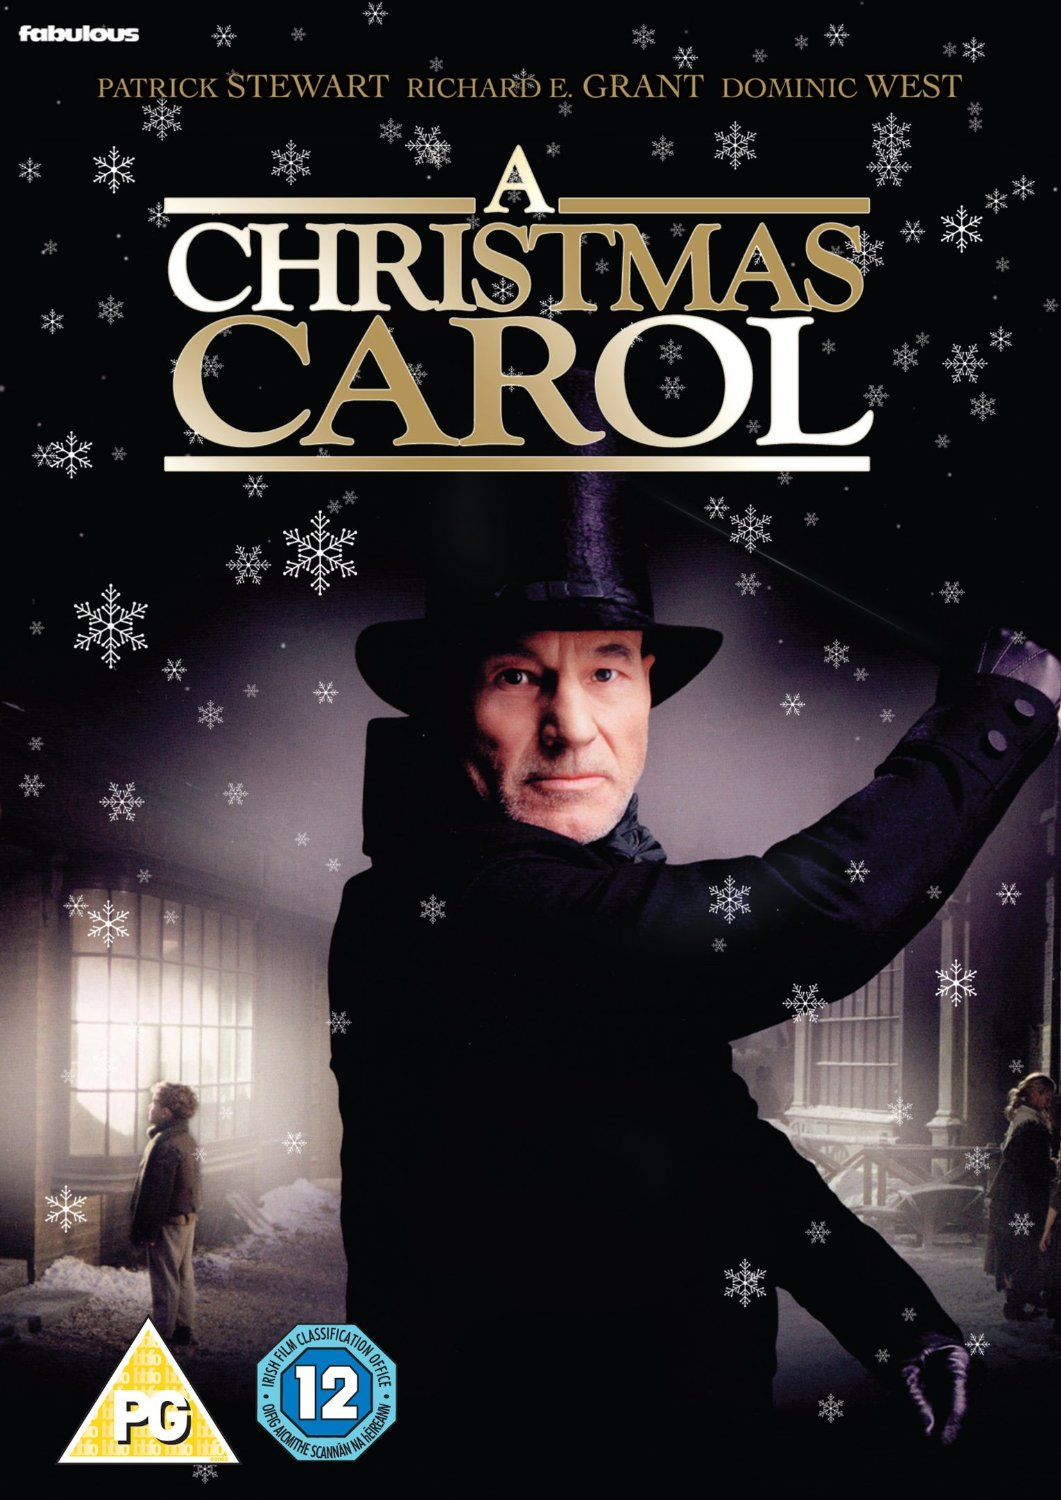 A Christmas Carol - Mrs. Overby's Class Site